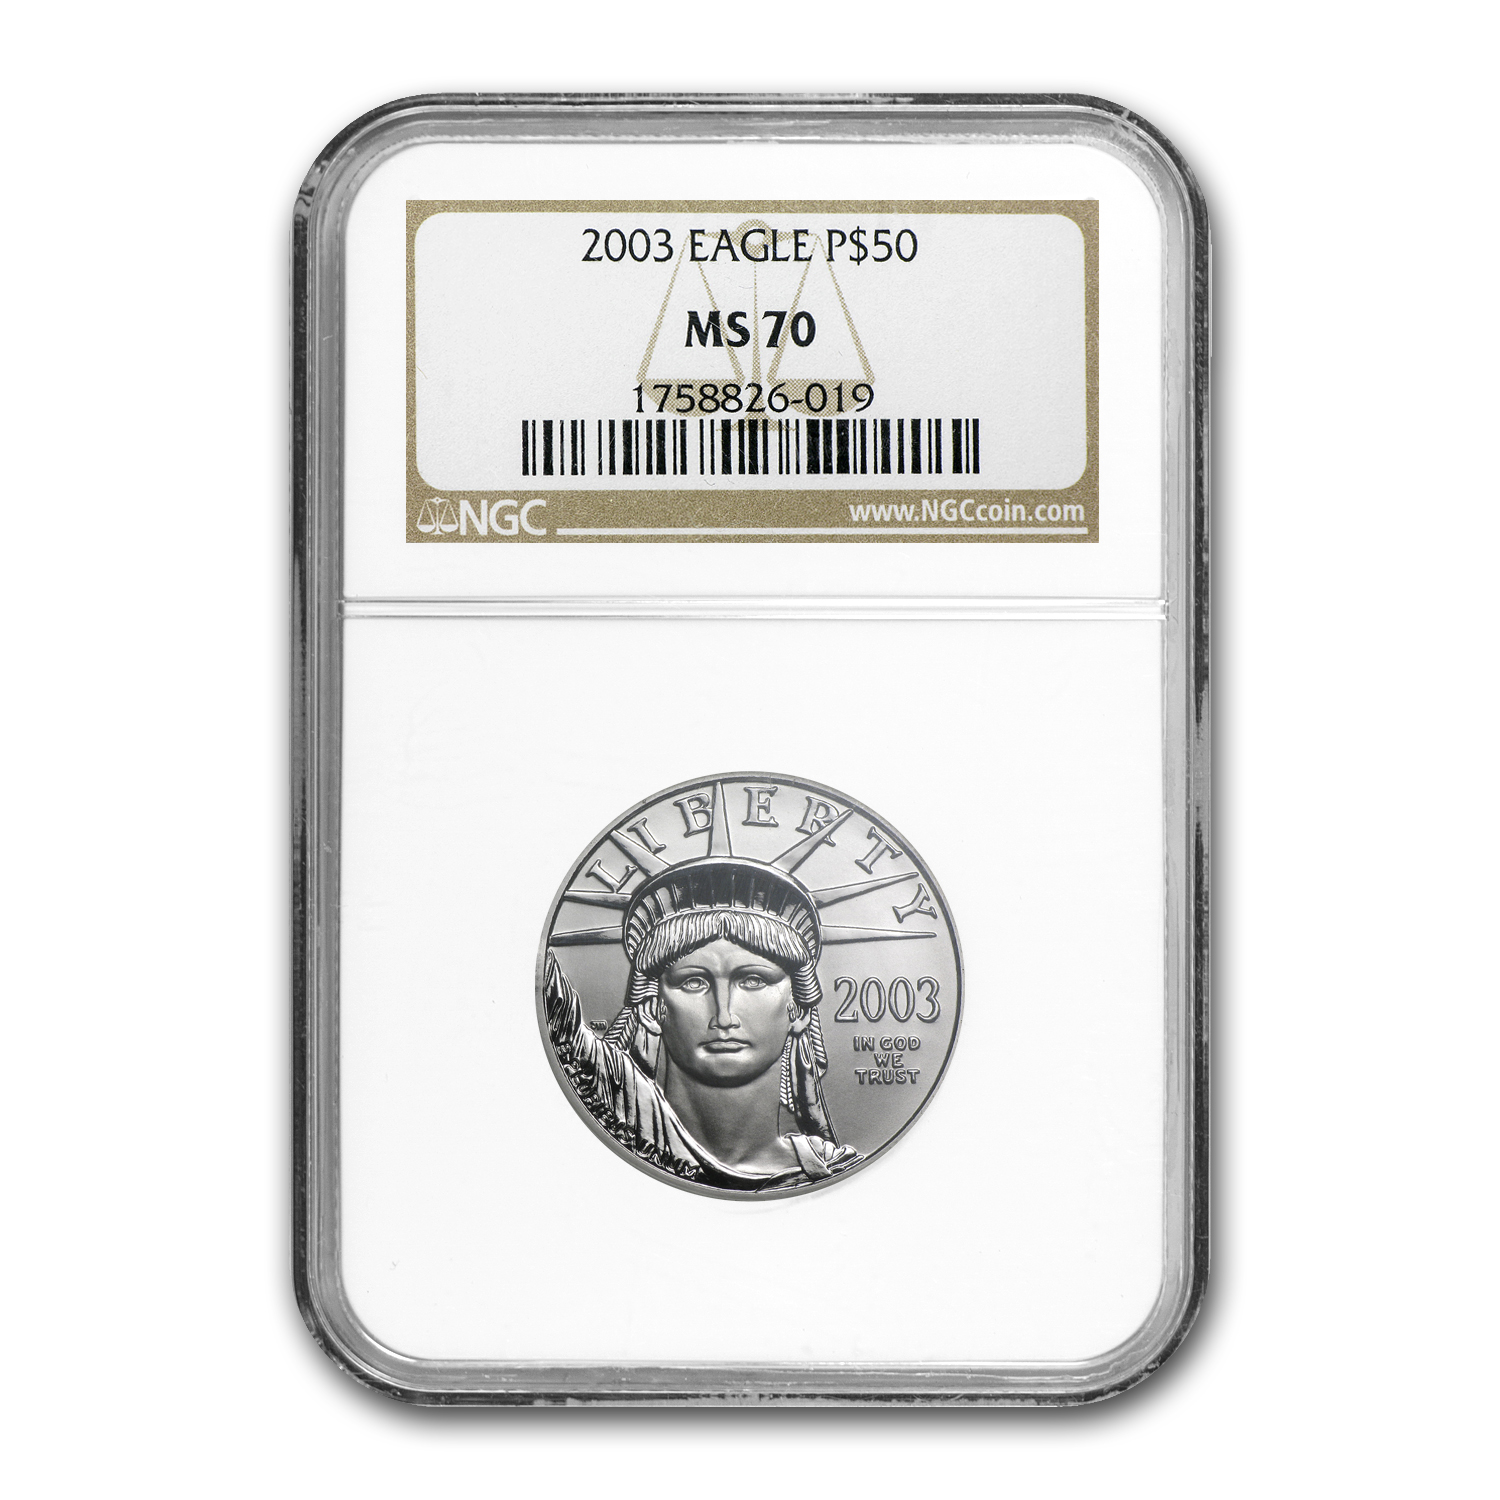 2003 1/2 oz Platinum American Eagle MS-70 NGC